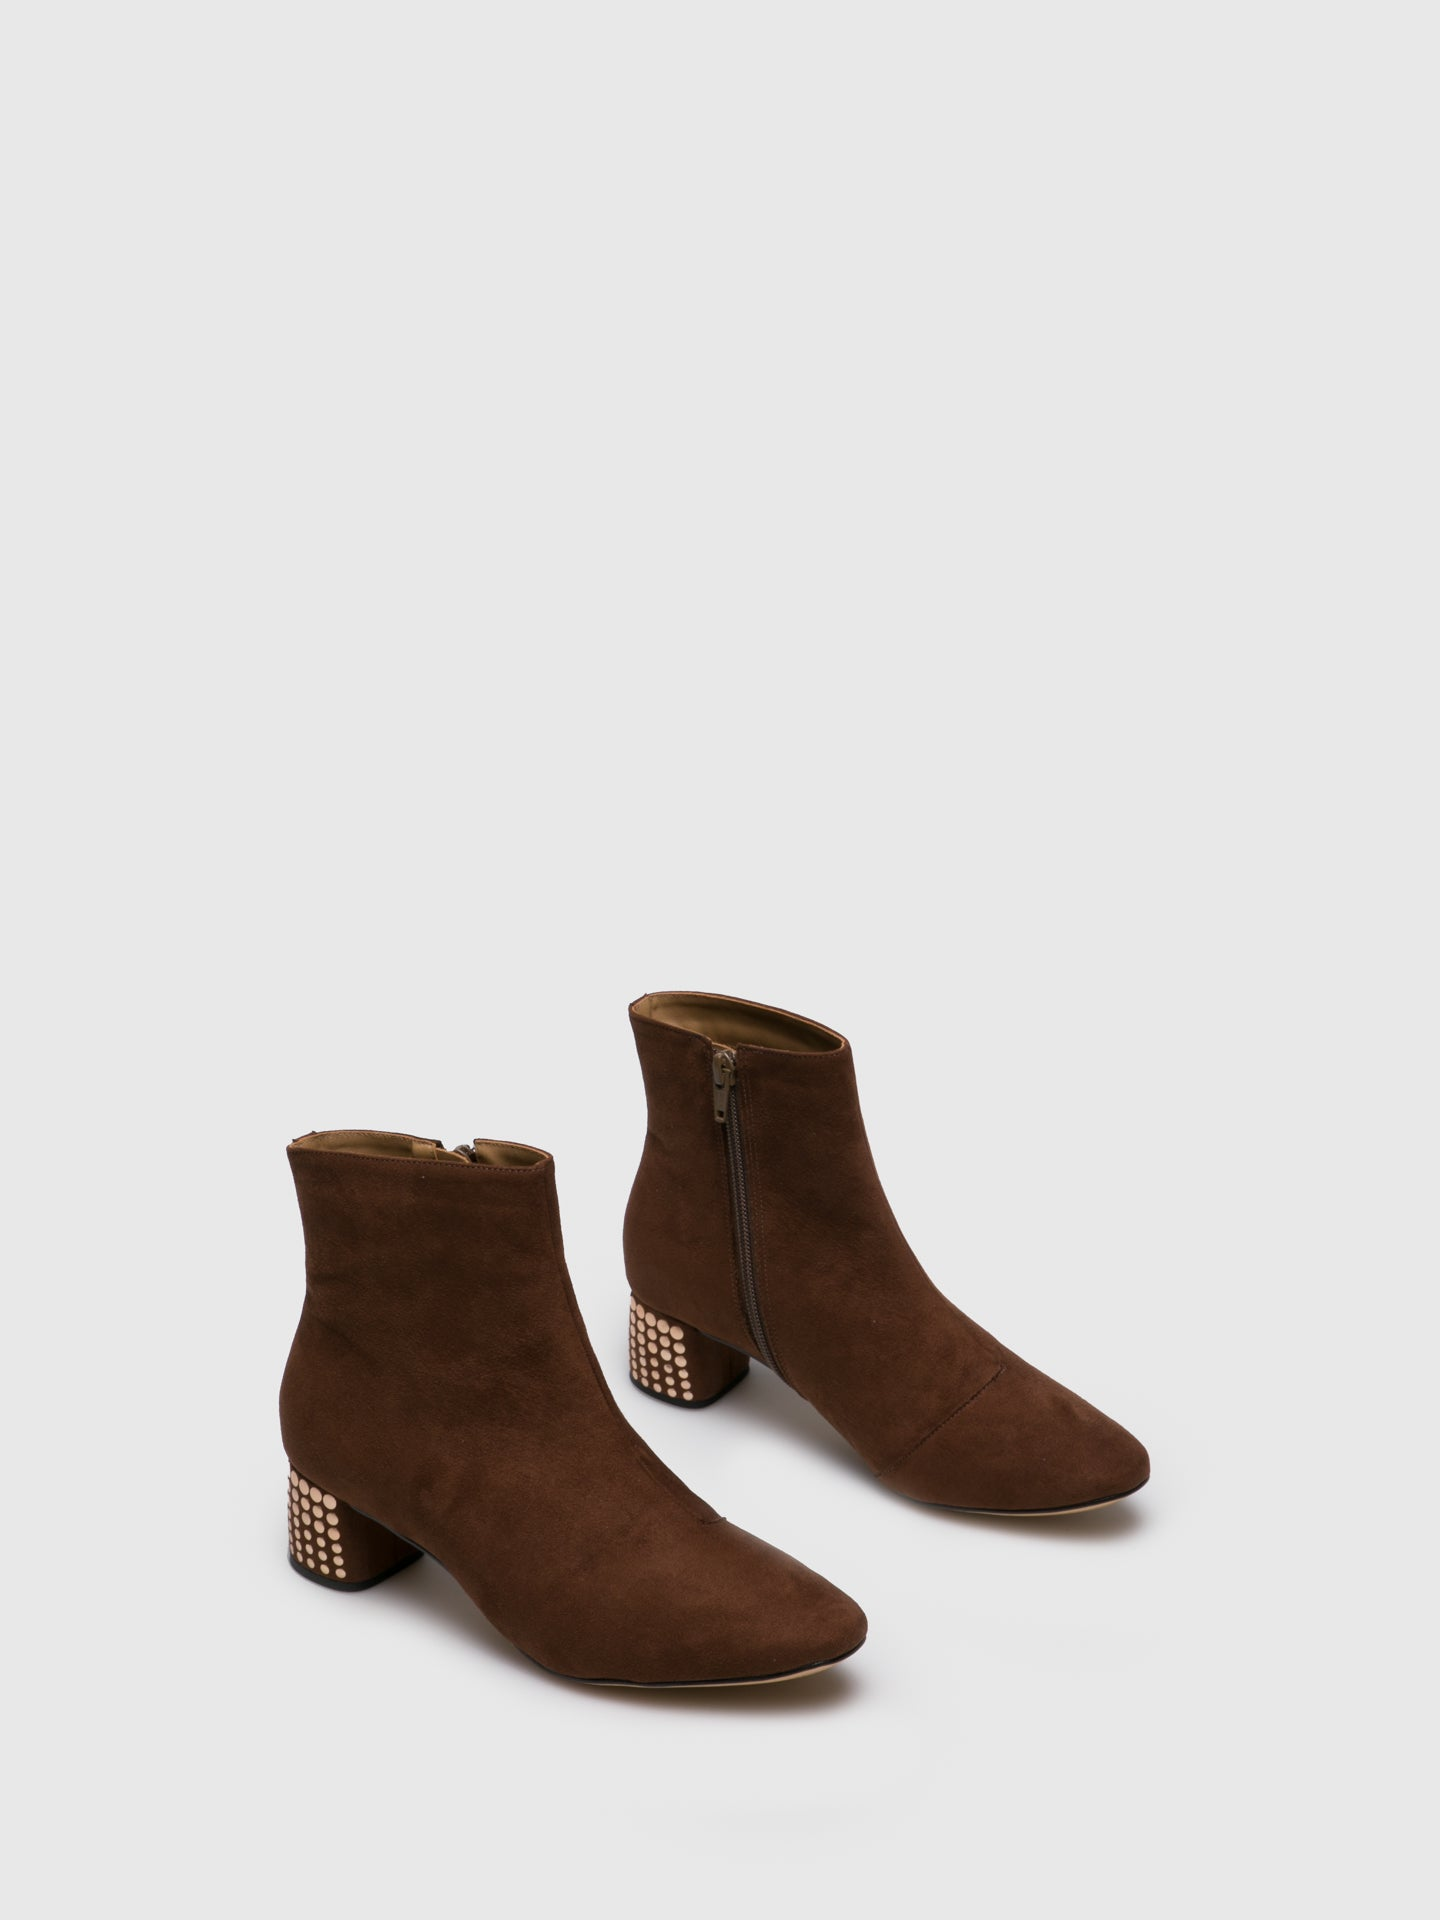 Parodi Passion Camel Zip Up Ankle Boots